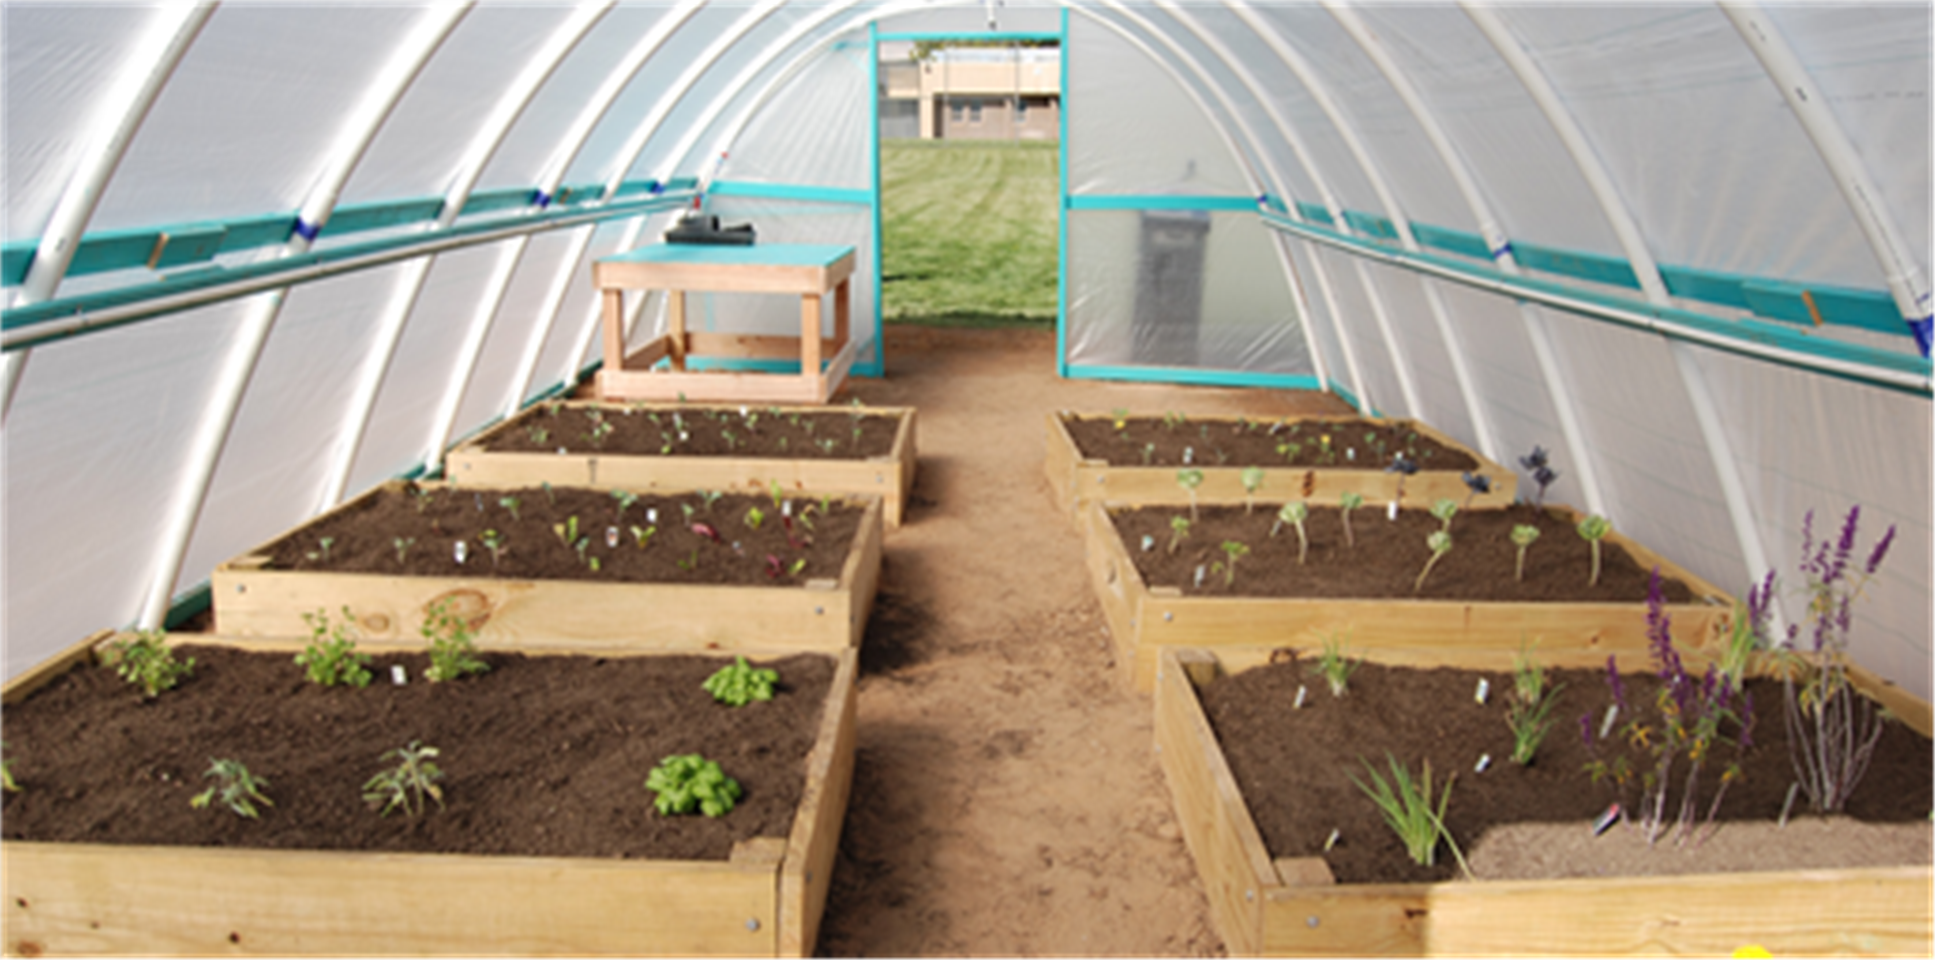 Greenhouse interior with raised beds containing small plants